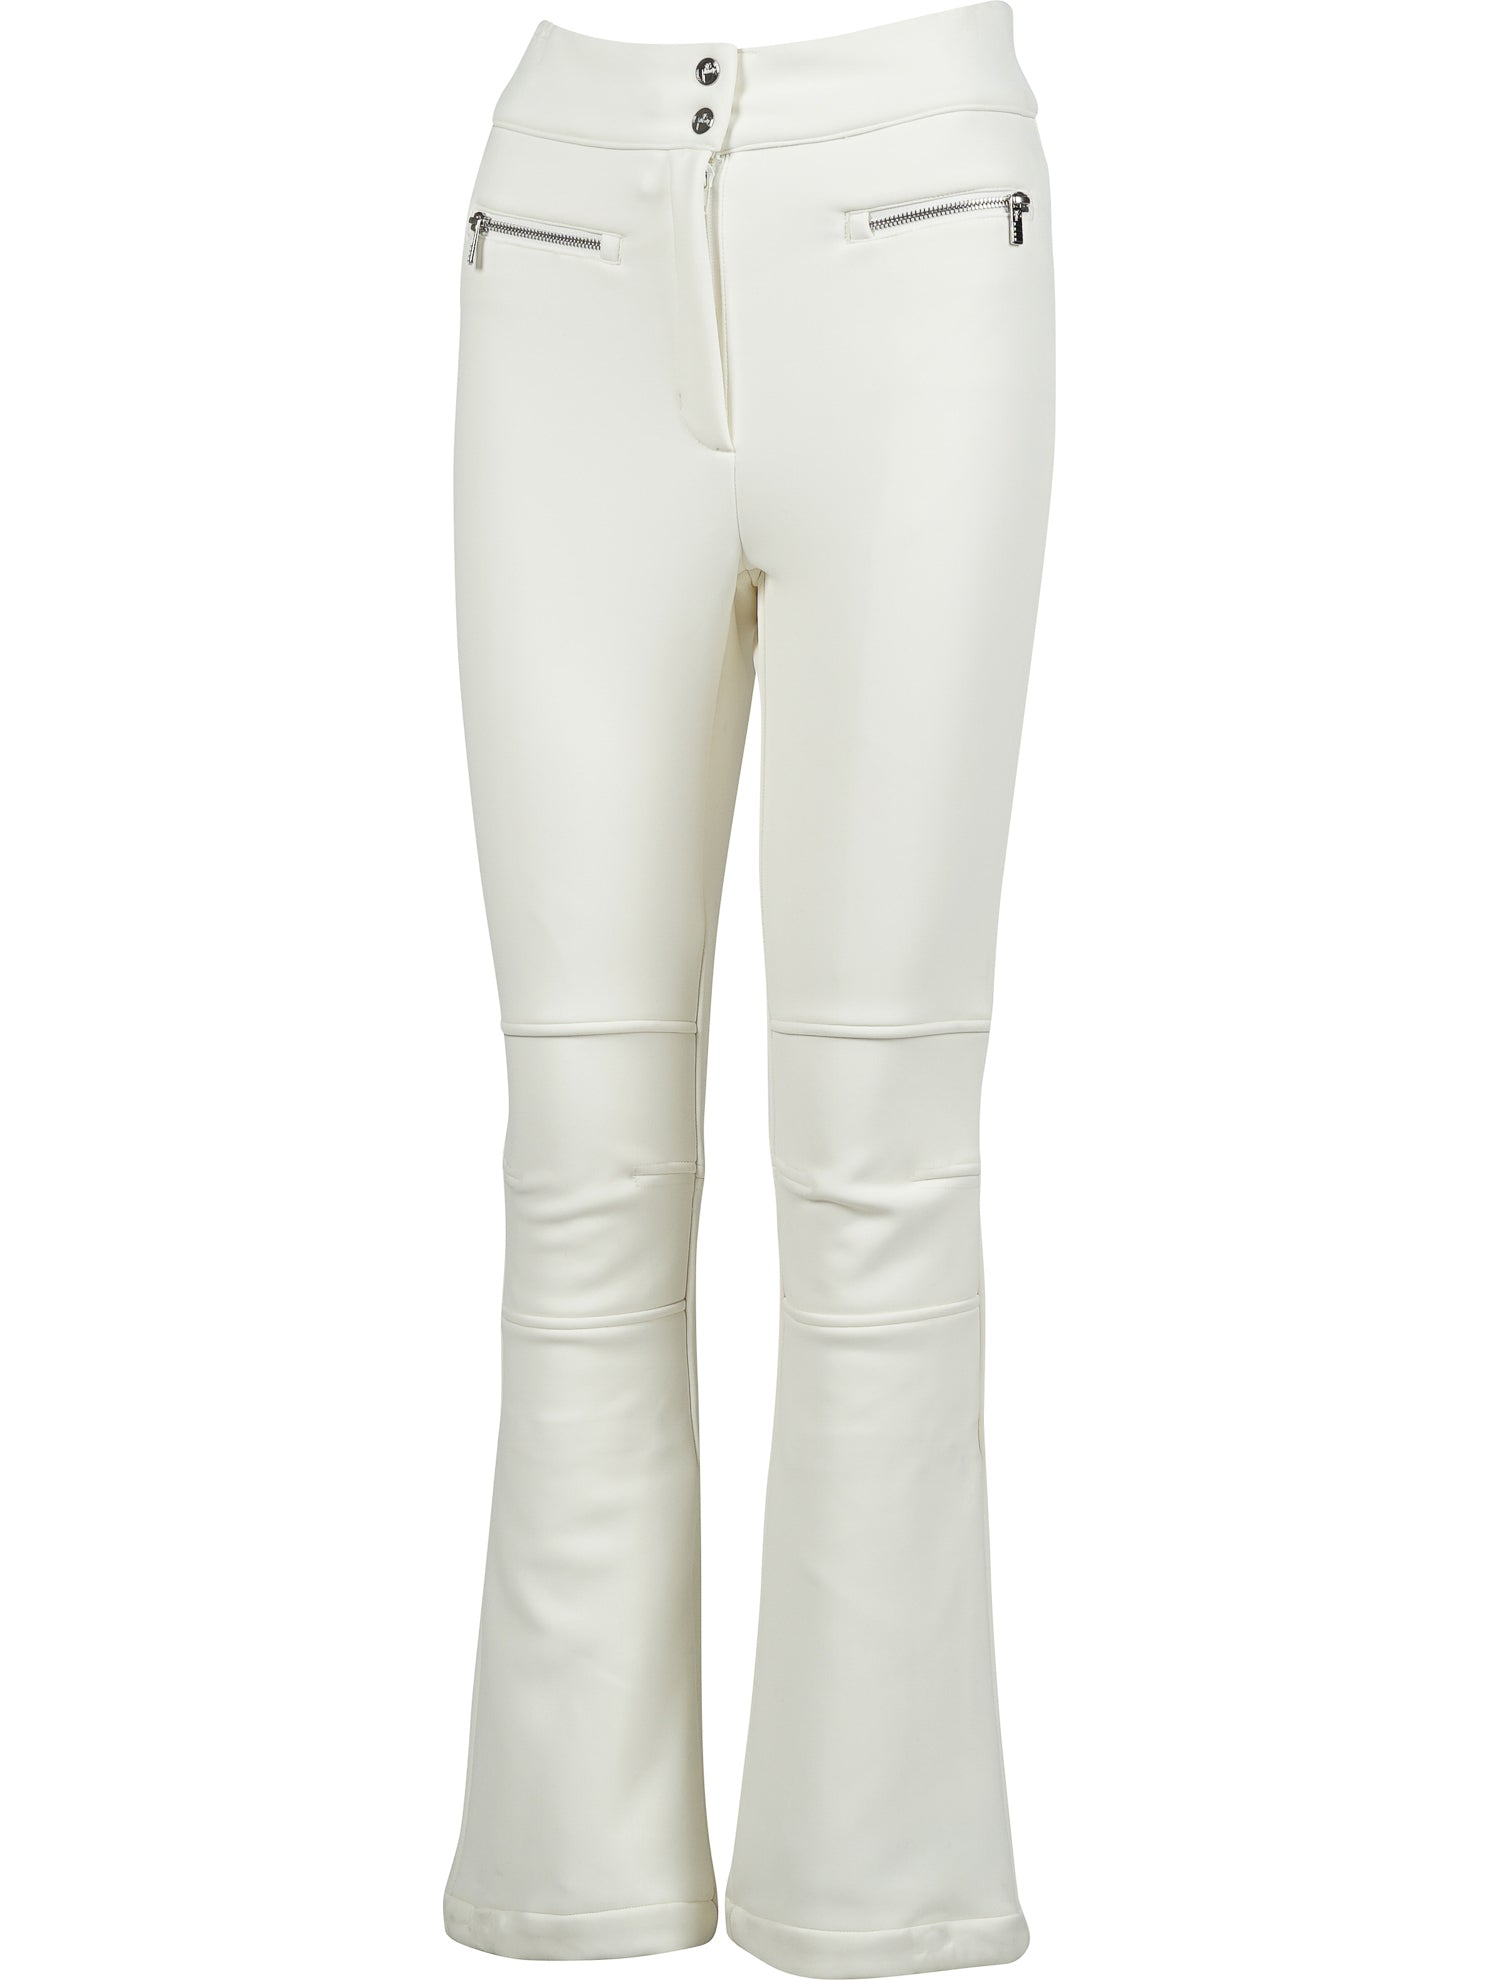 Elancia Fitted Zip Waist Detail Ski Pants - White